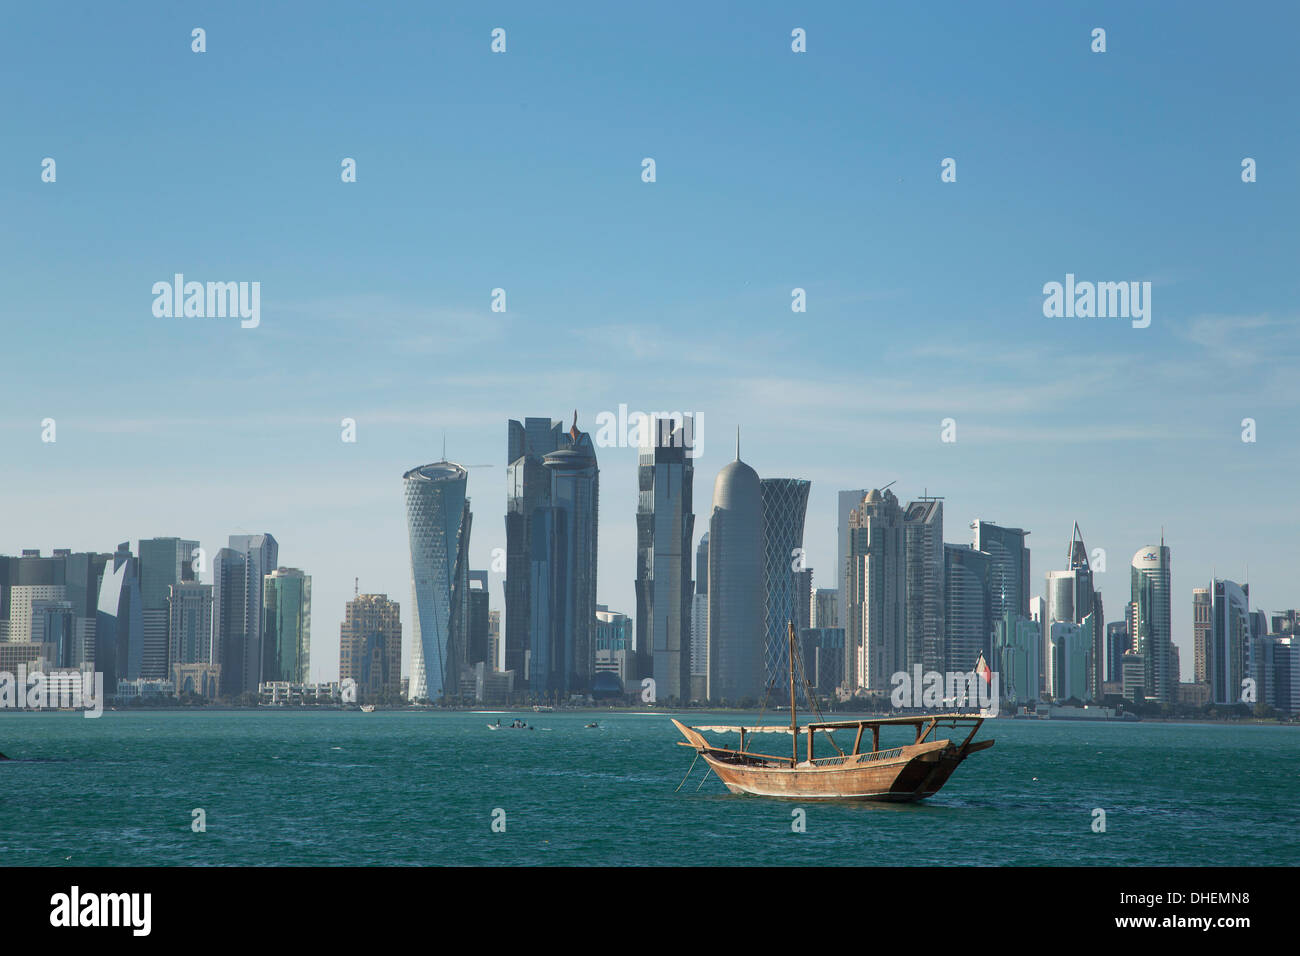 Futuristic skyscrapers in Doha, Qatar, Middle East - Stock Image